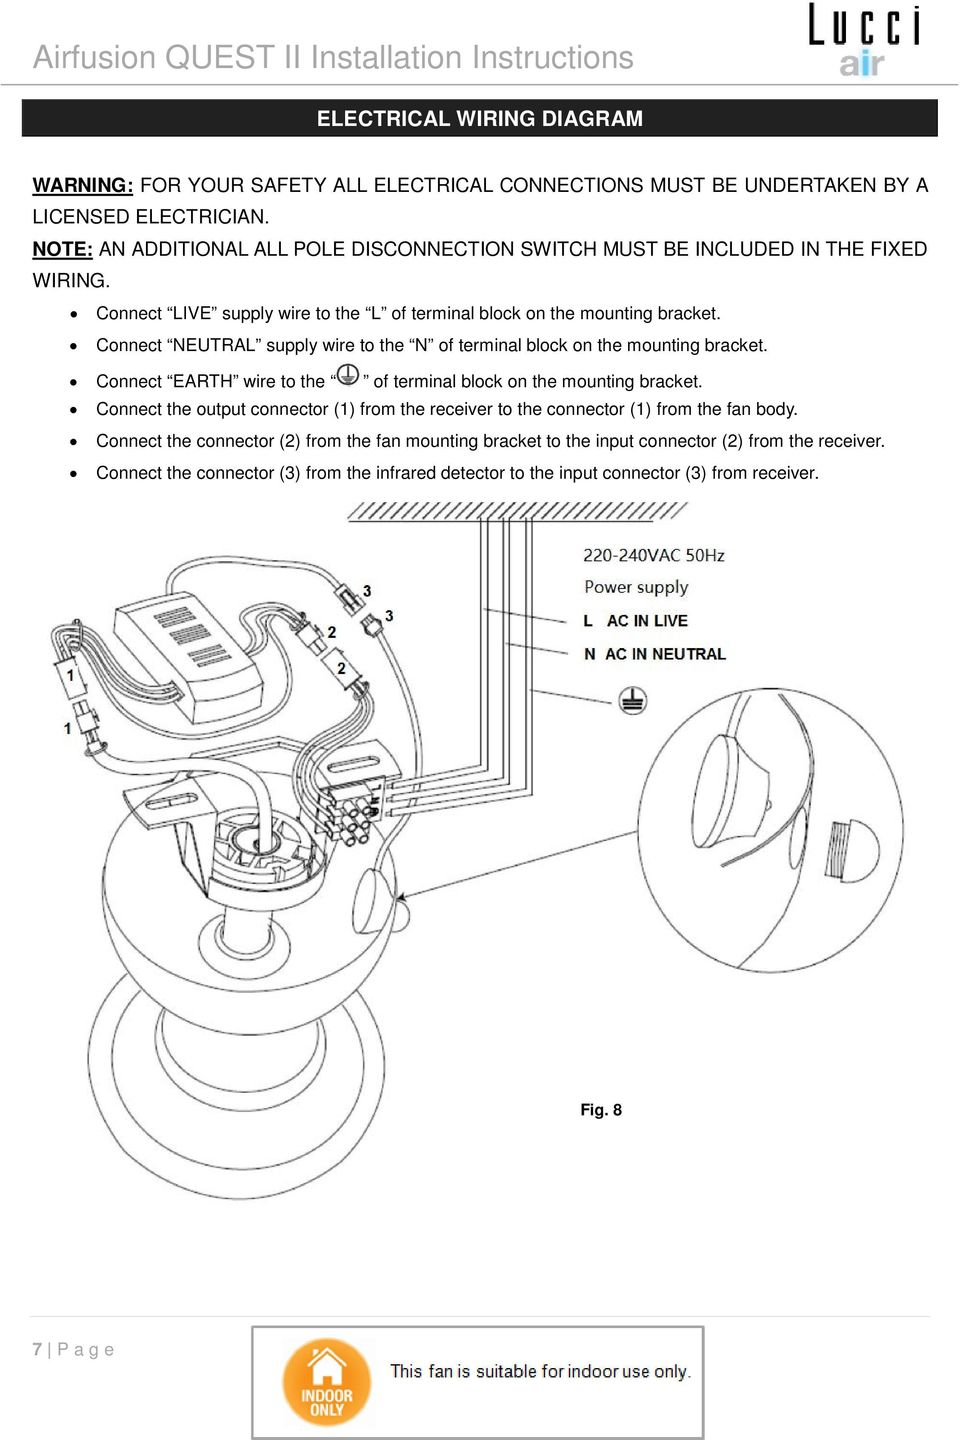 Lucci Airfusion Quest Ii Ceiling Fan Pdf 240 Vac Plug Wiring Diagram Connect Neutral Supply Wire To The N Of Terminal Block On Mounting Bracket